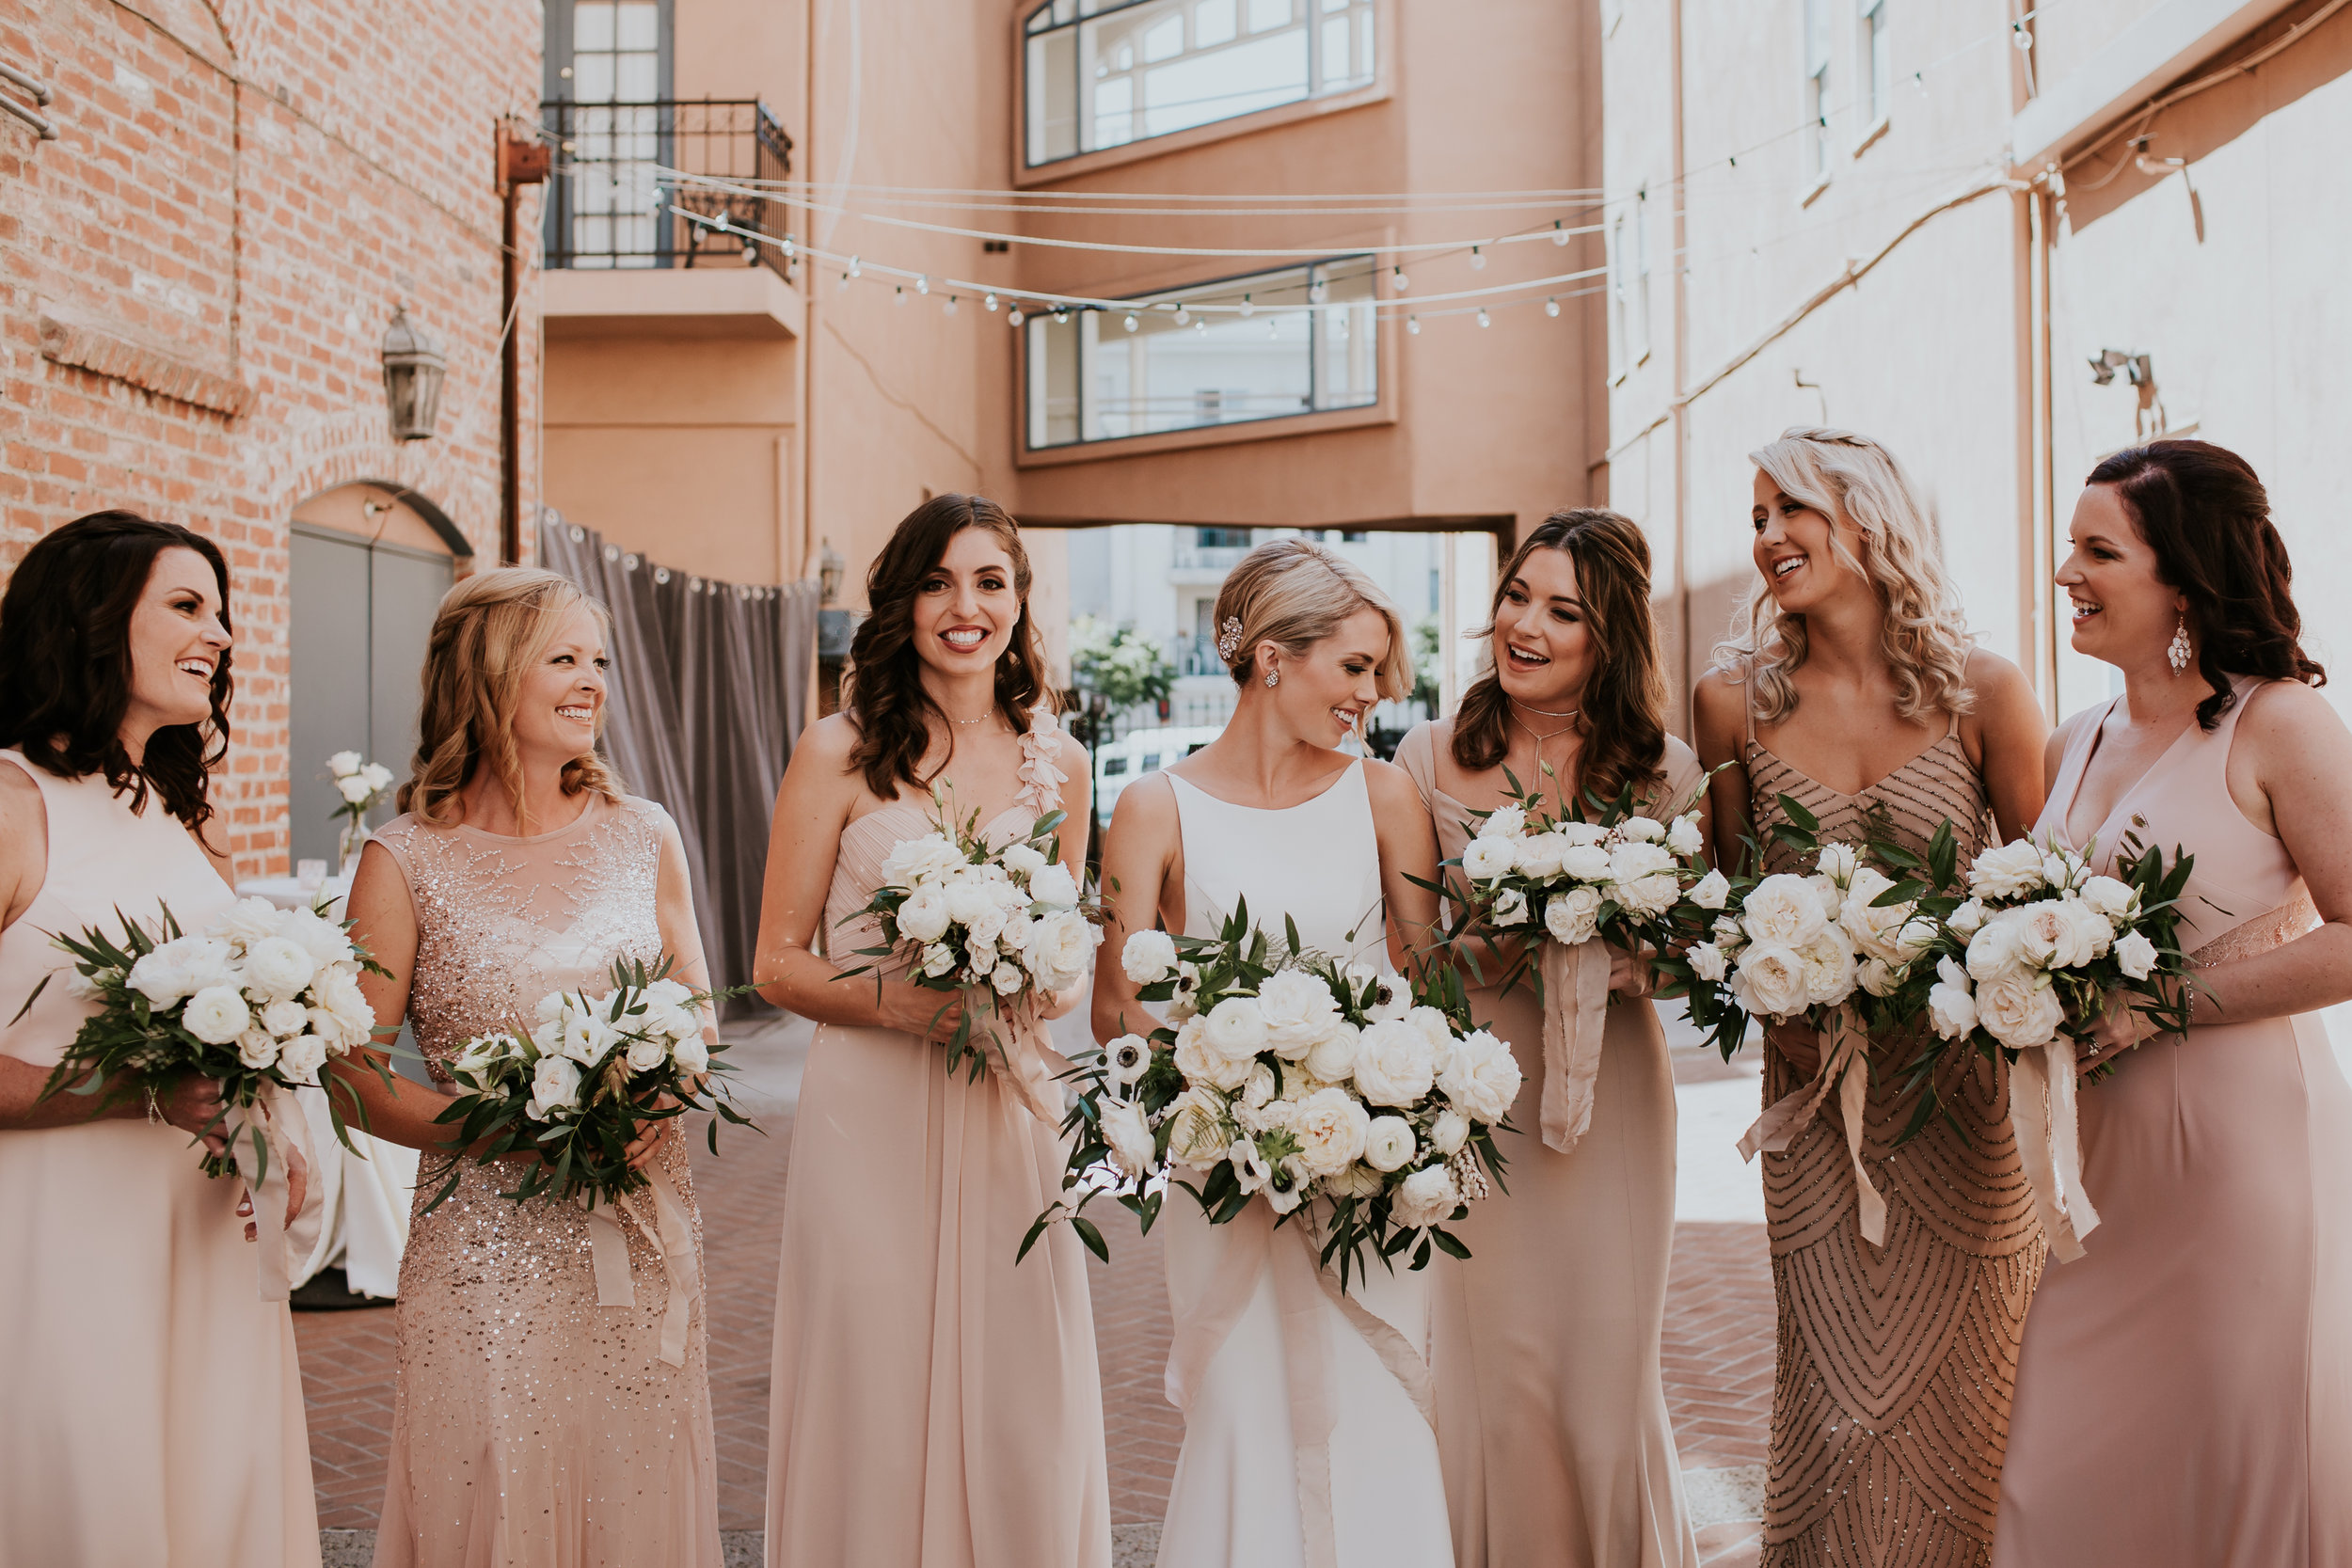 20 bridal party bouquets.jpg